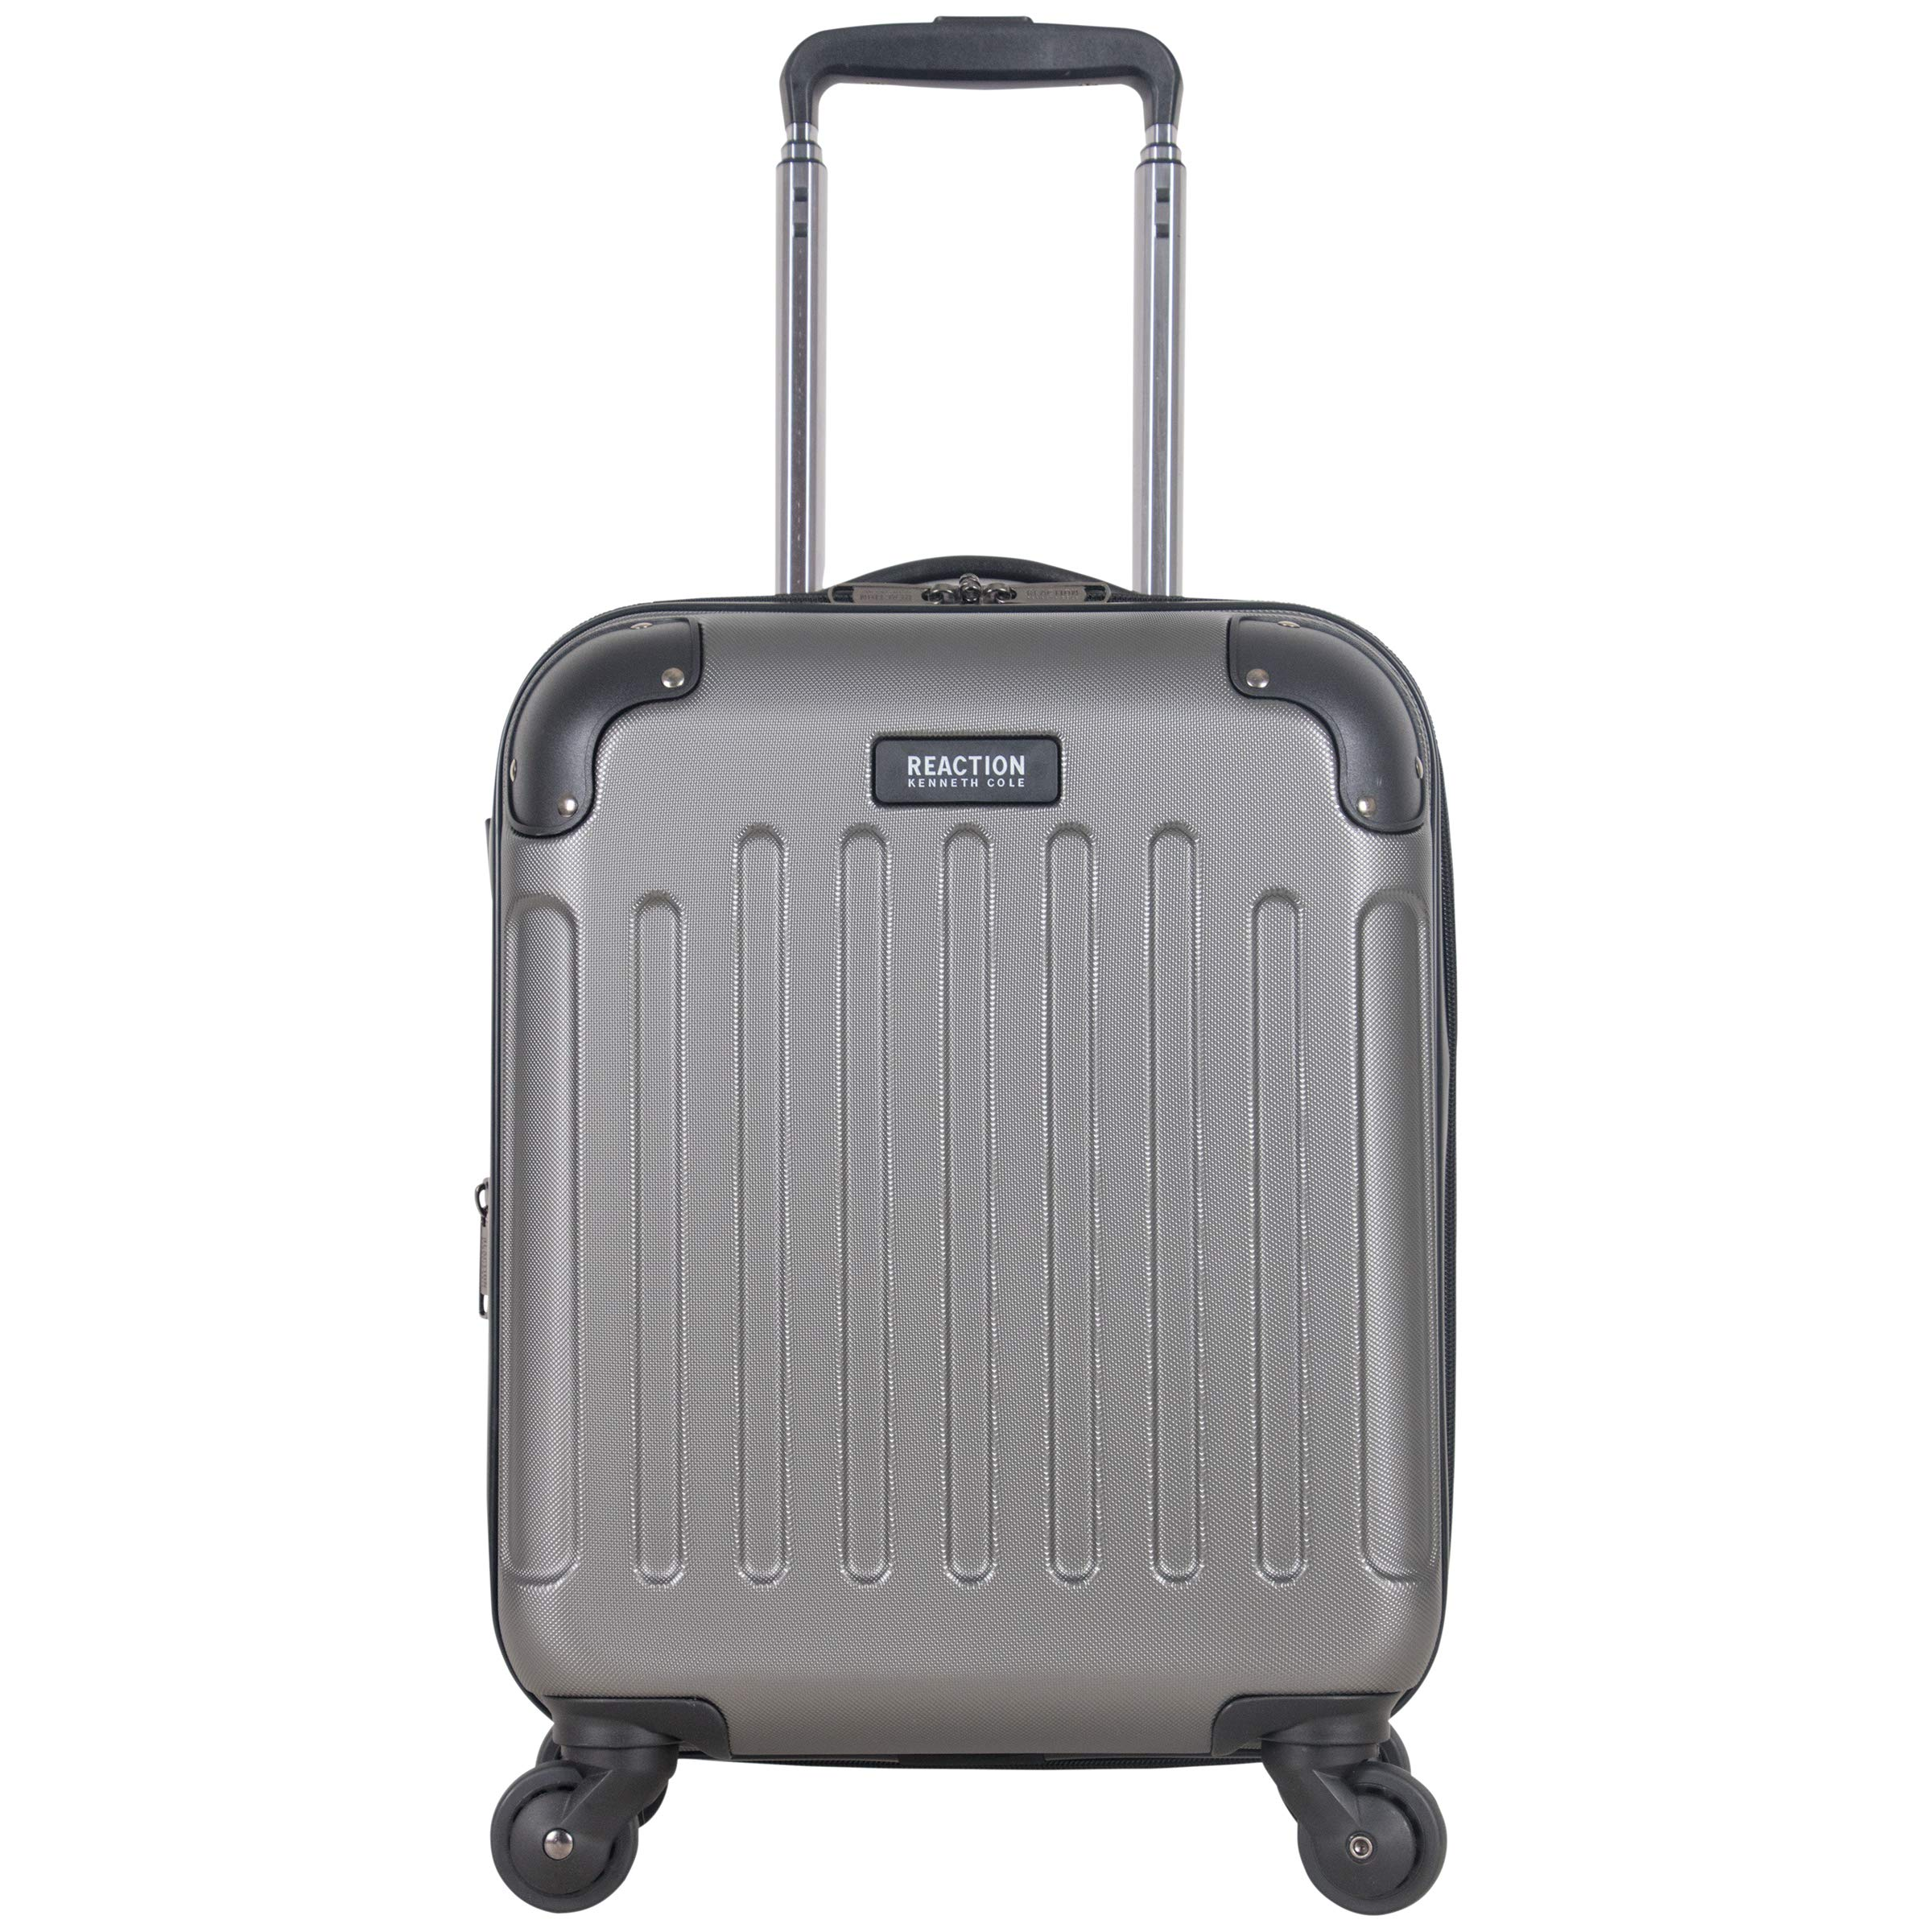 Kenneth Cole Reaction Renegade 16'' Hardside Expandable 4-Wheel Spinner Mini Carry-on Luggage, Silver